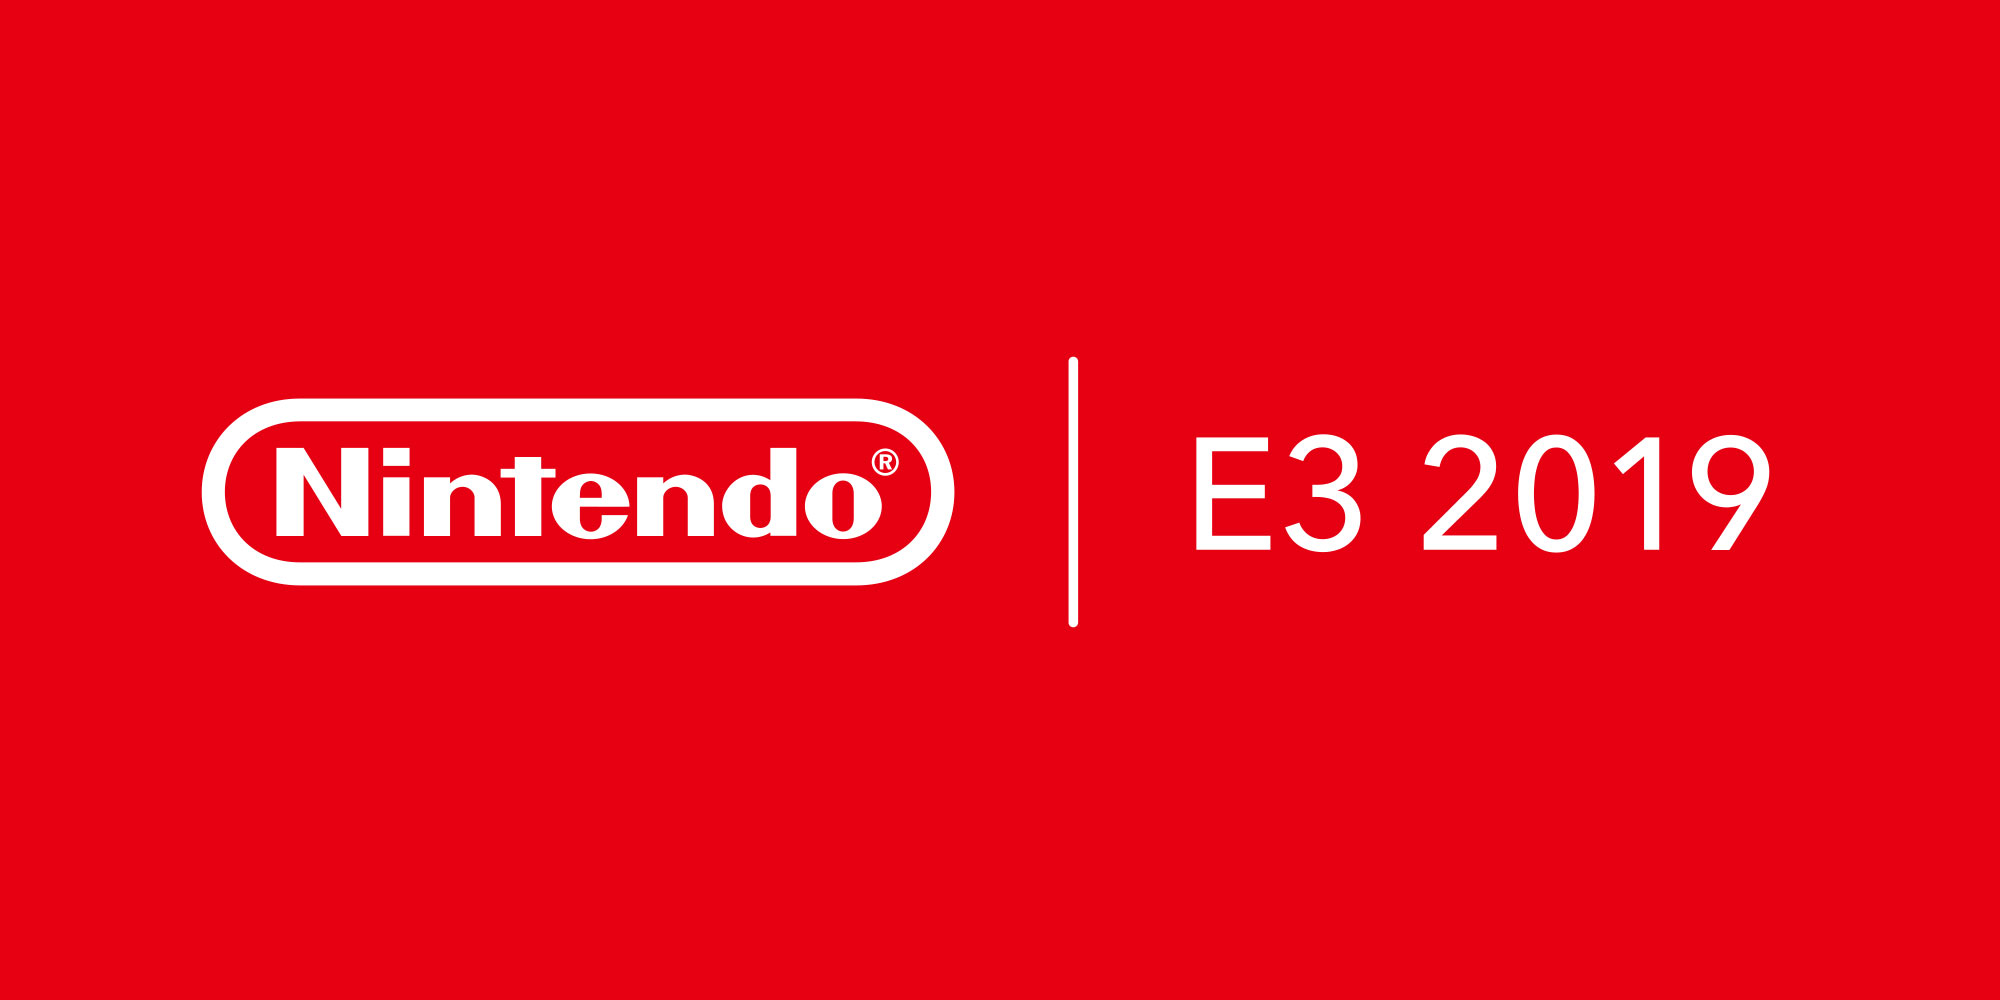 Nintendo of Europe's E3 2019 website